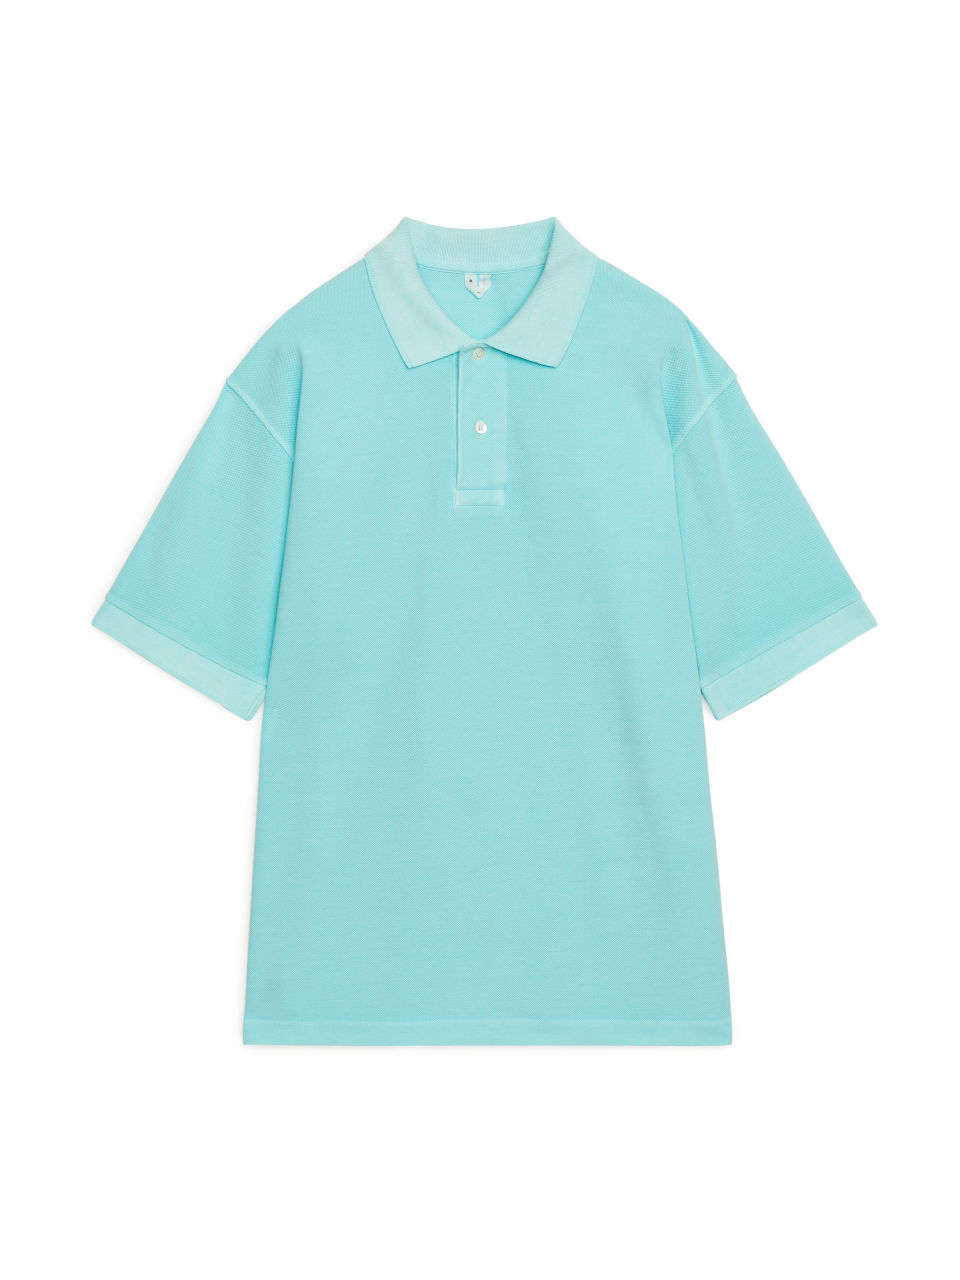 Garment-Dyed Polo Shirt - Turquoise